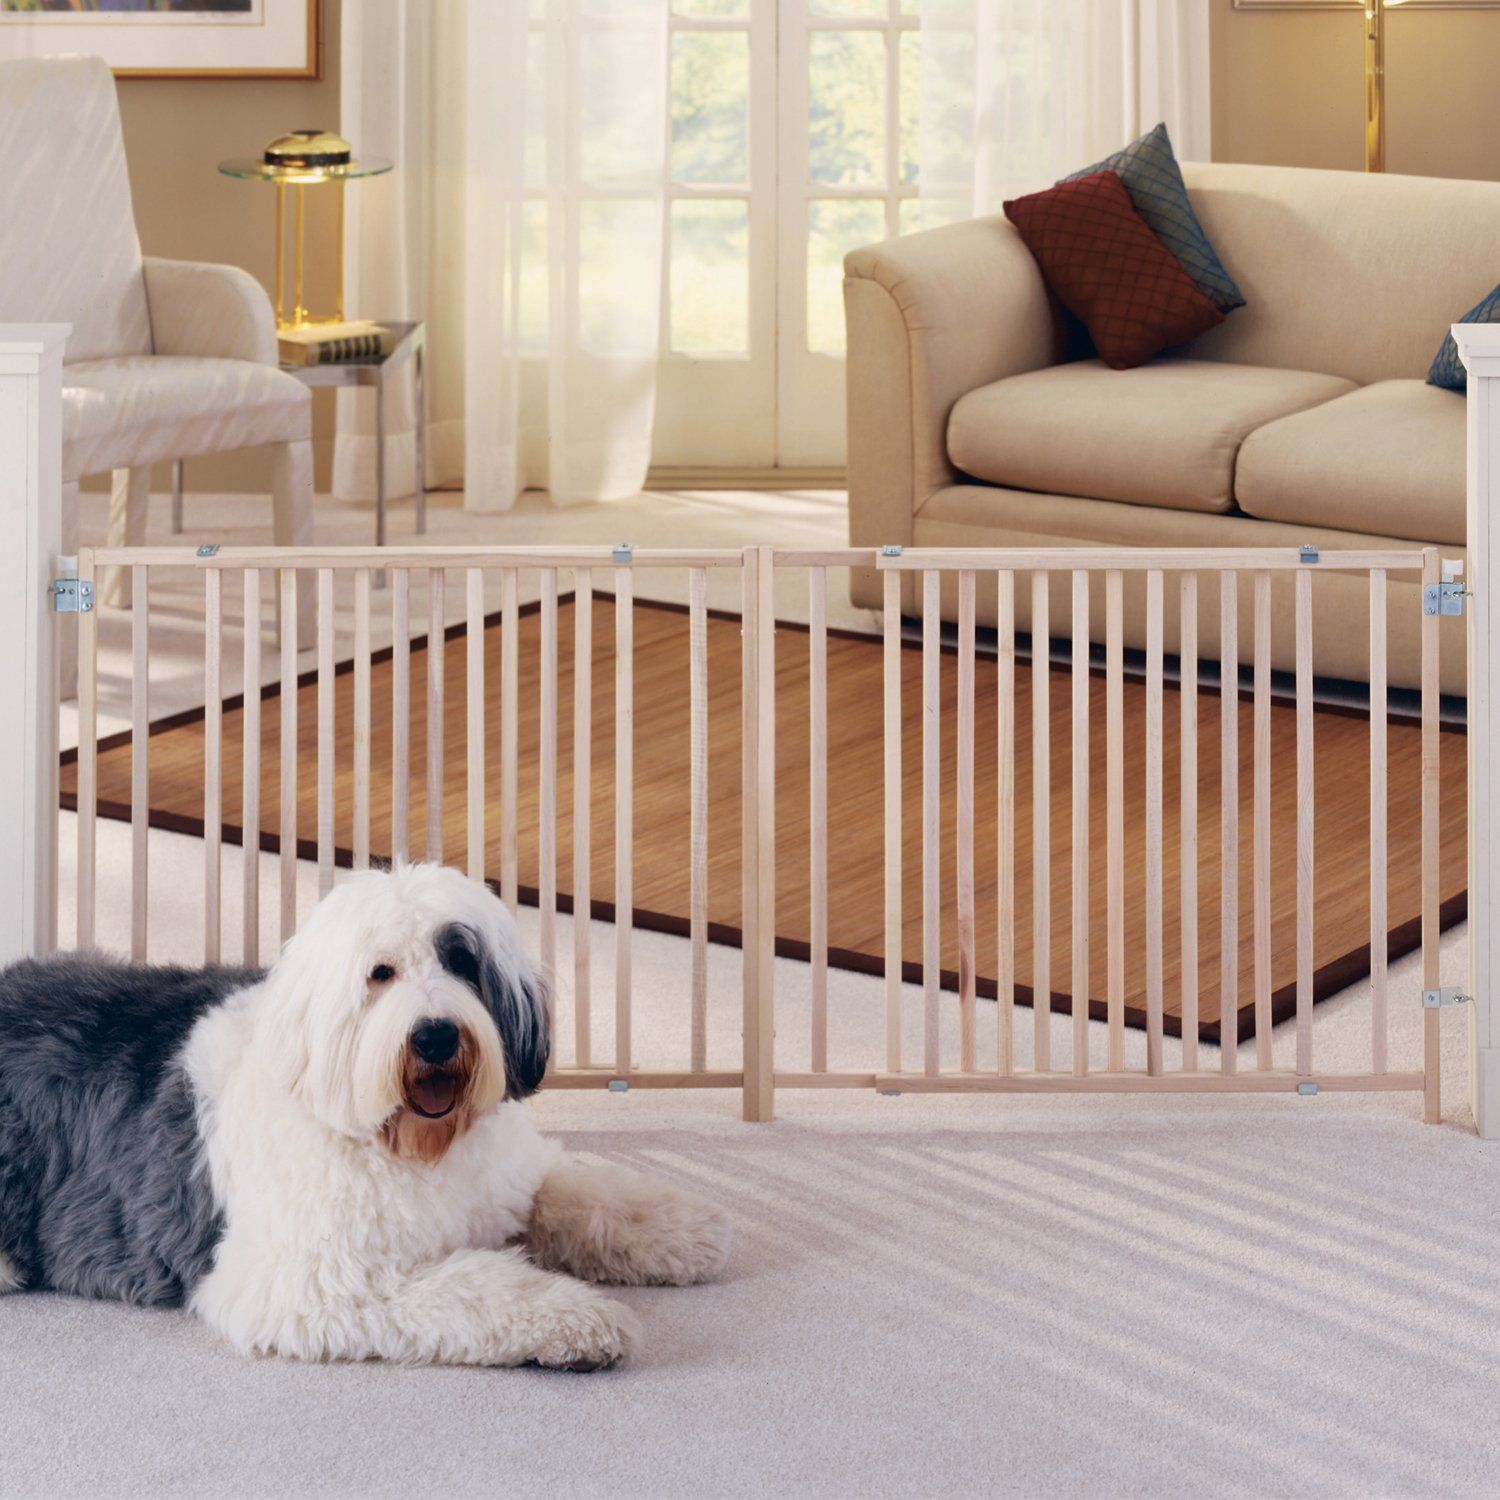 Pin by dagmar losasso on dog room pet gate dog gate pets